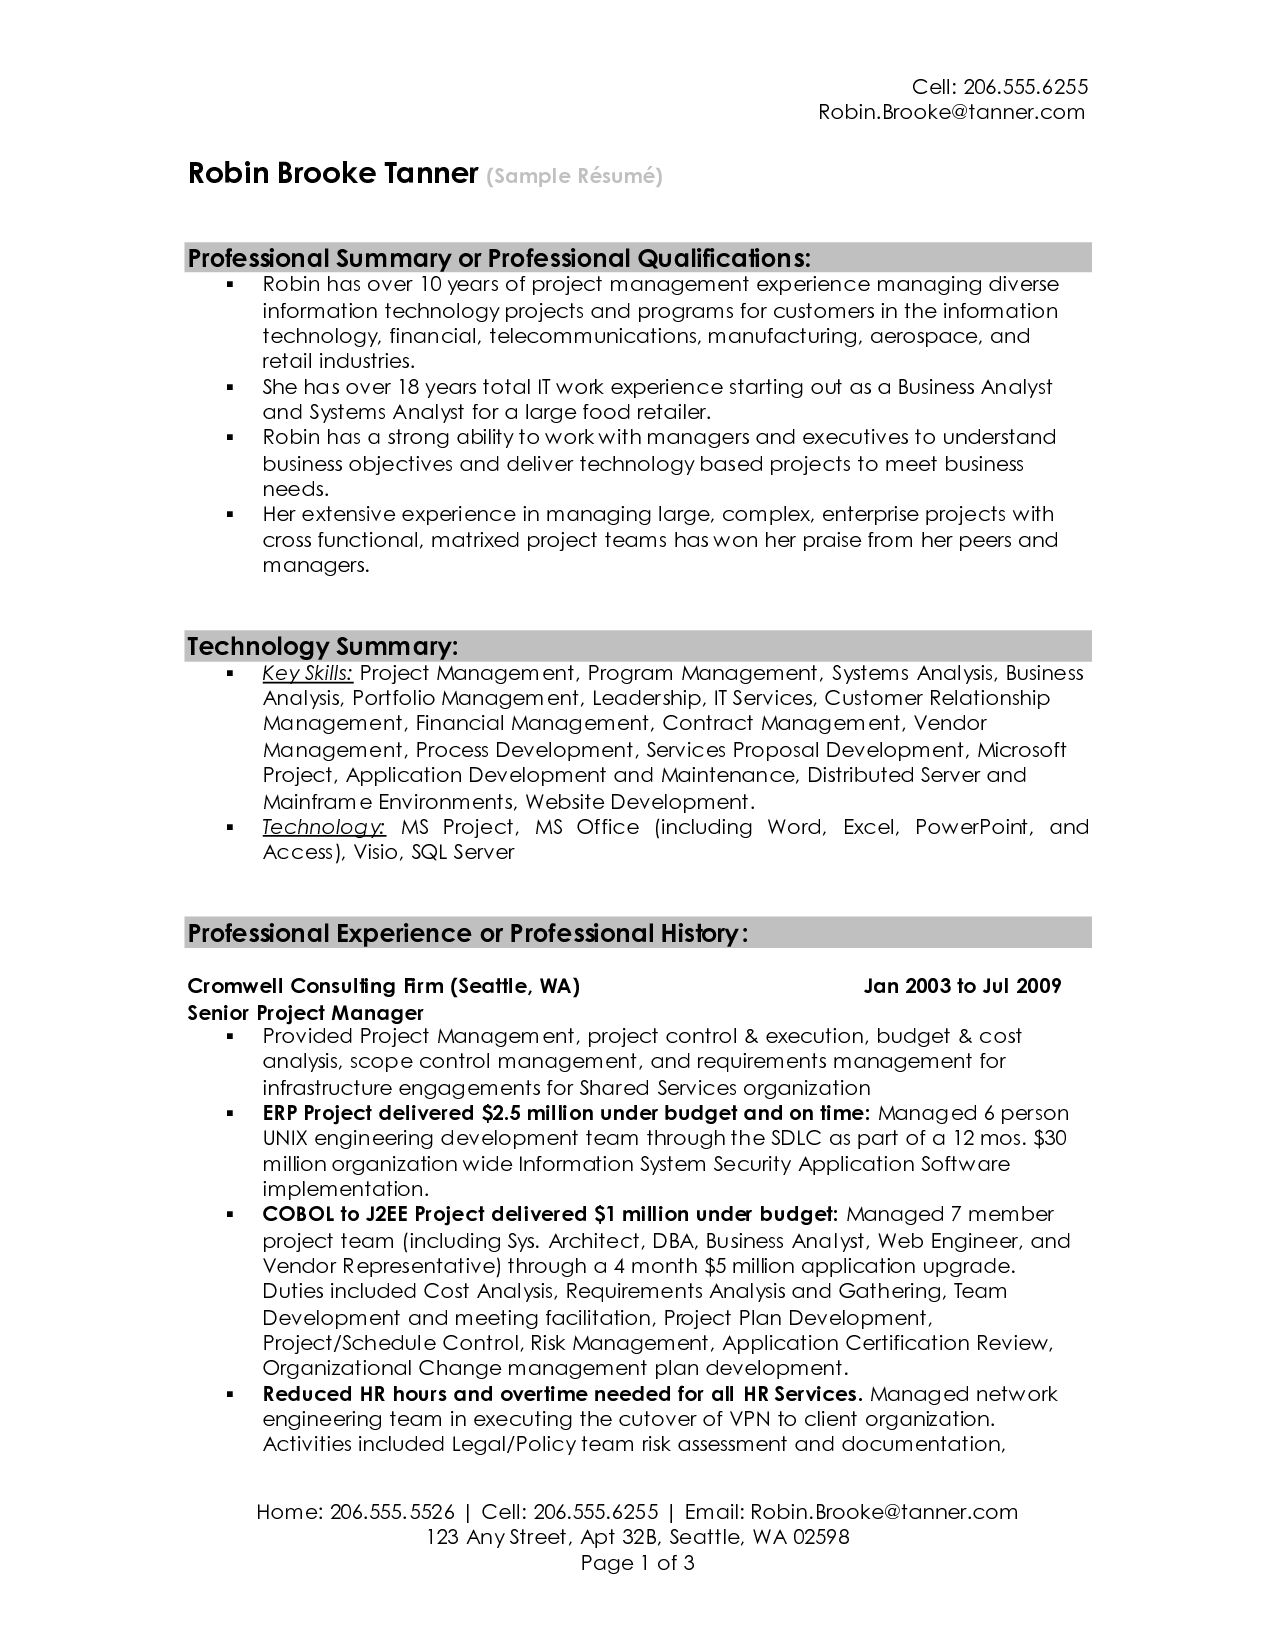 Sample Resume Summary Statement Professional Summary Resume Examples Professional Resume Summary